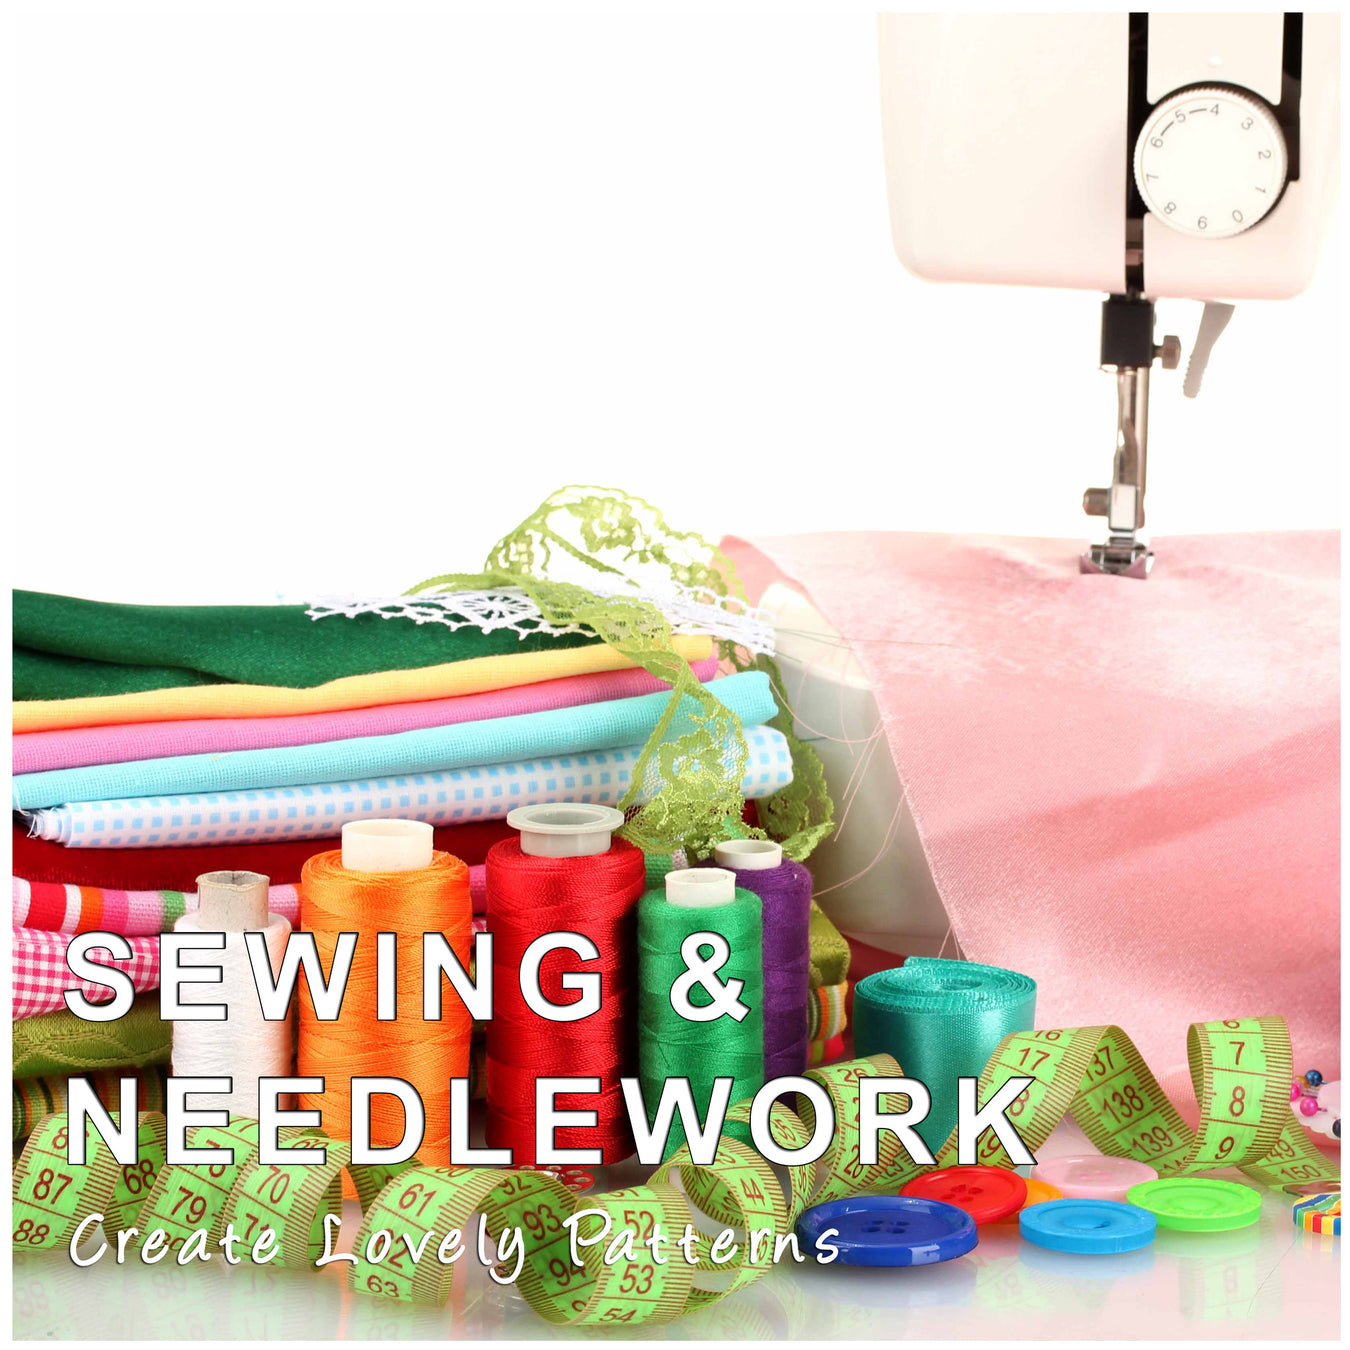 Sewing & Needlework